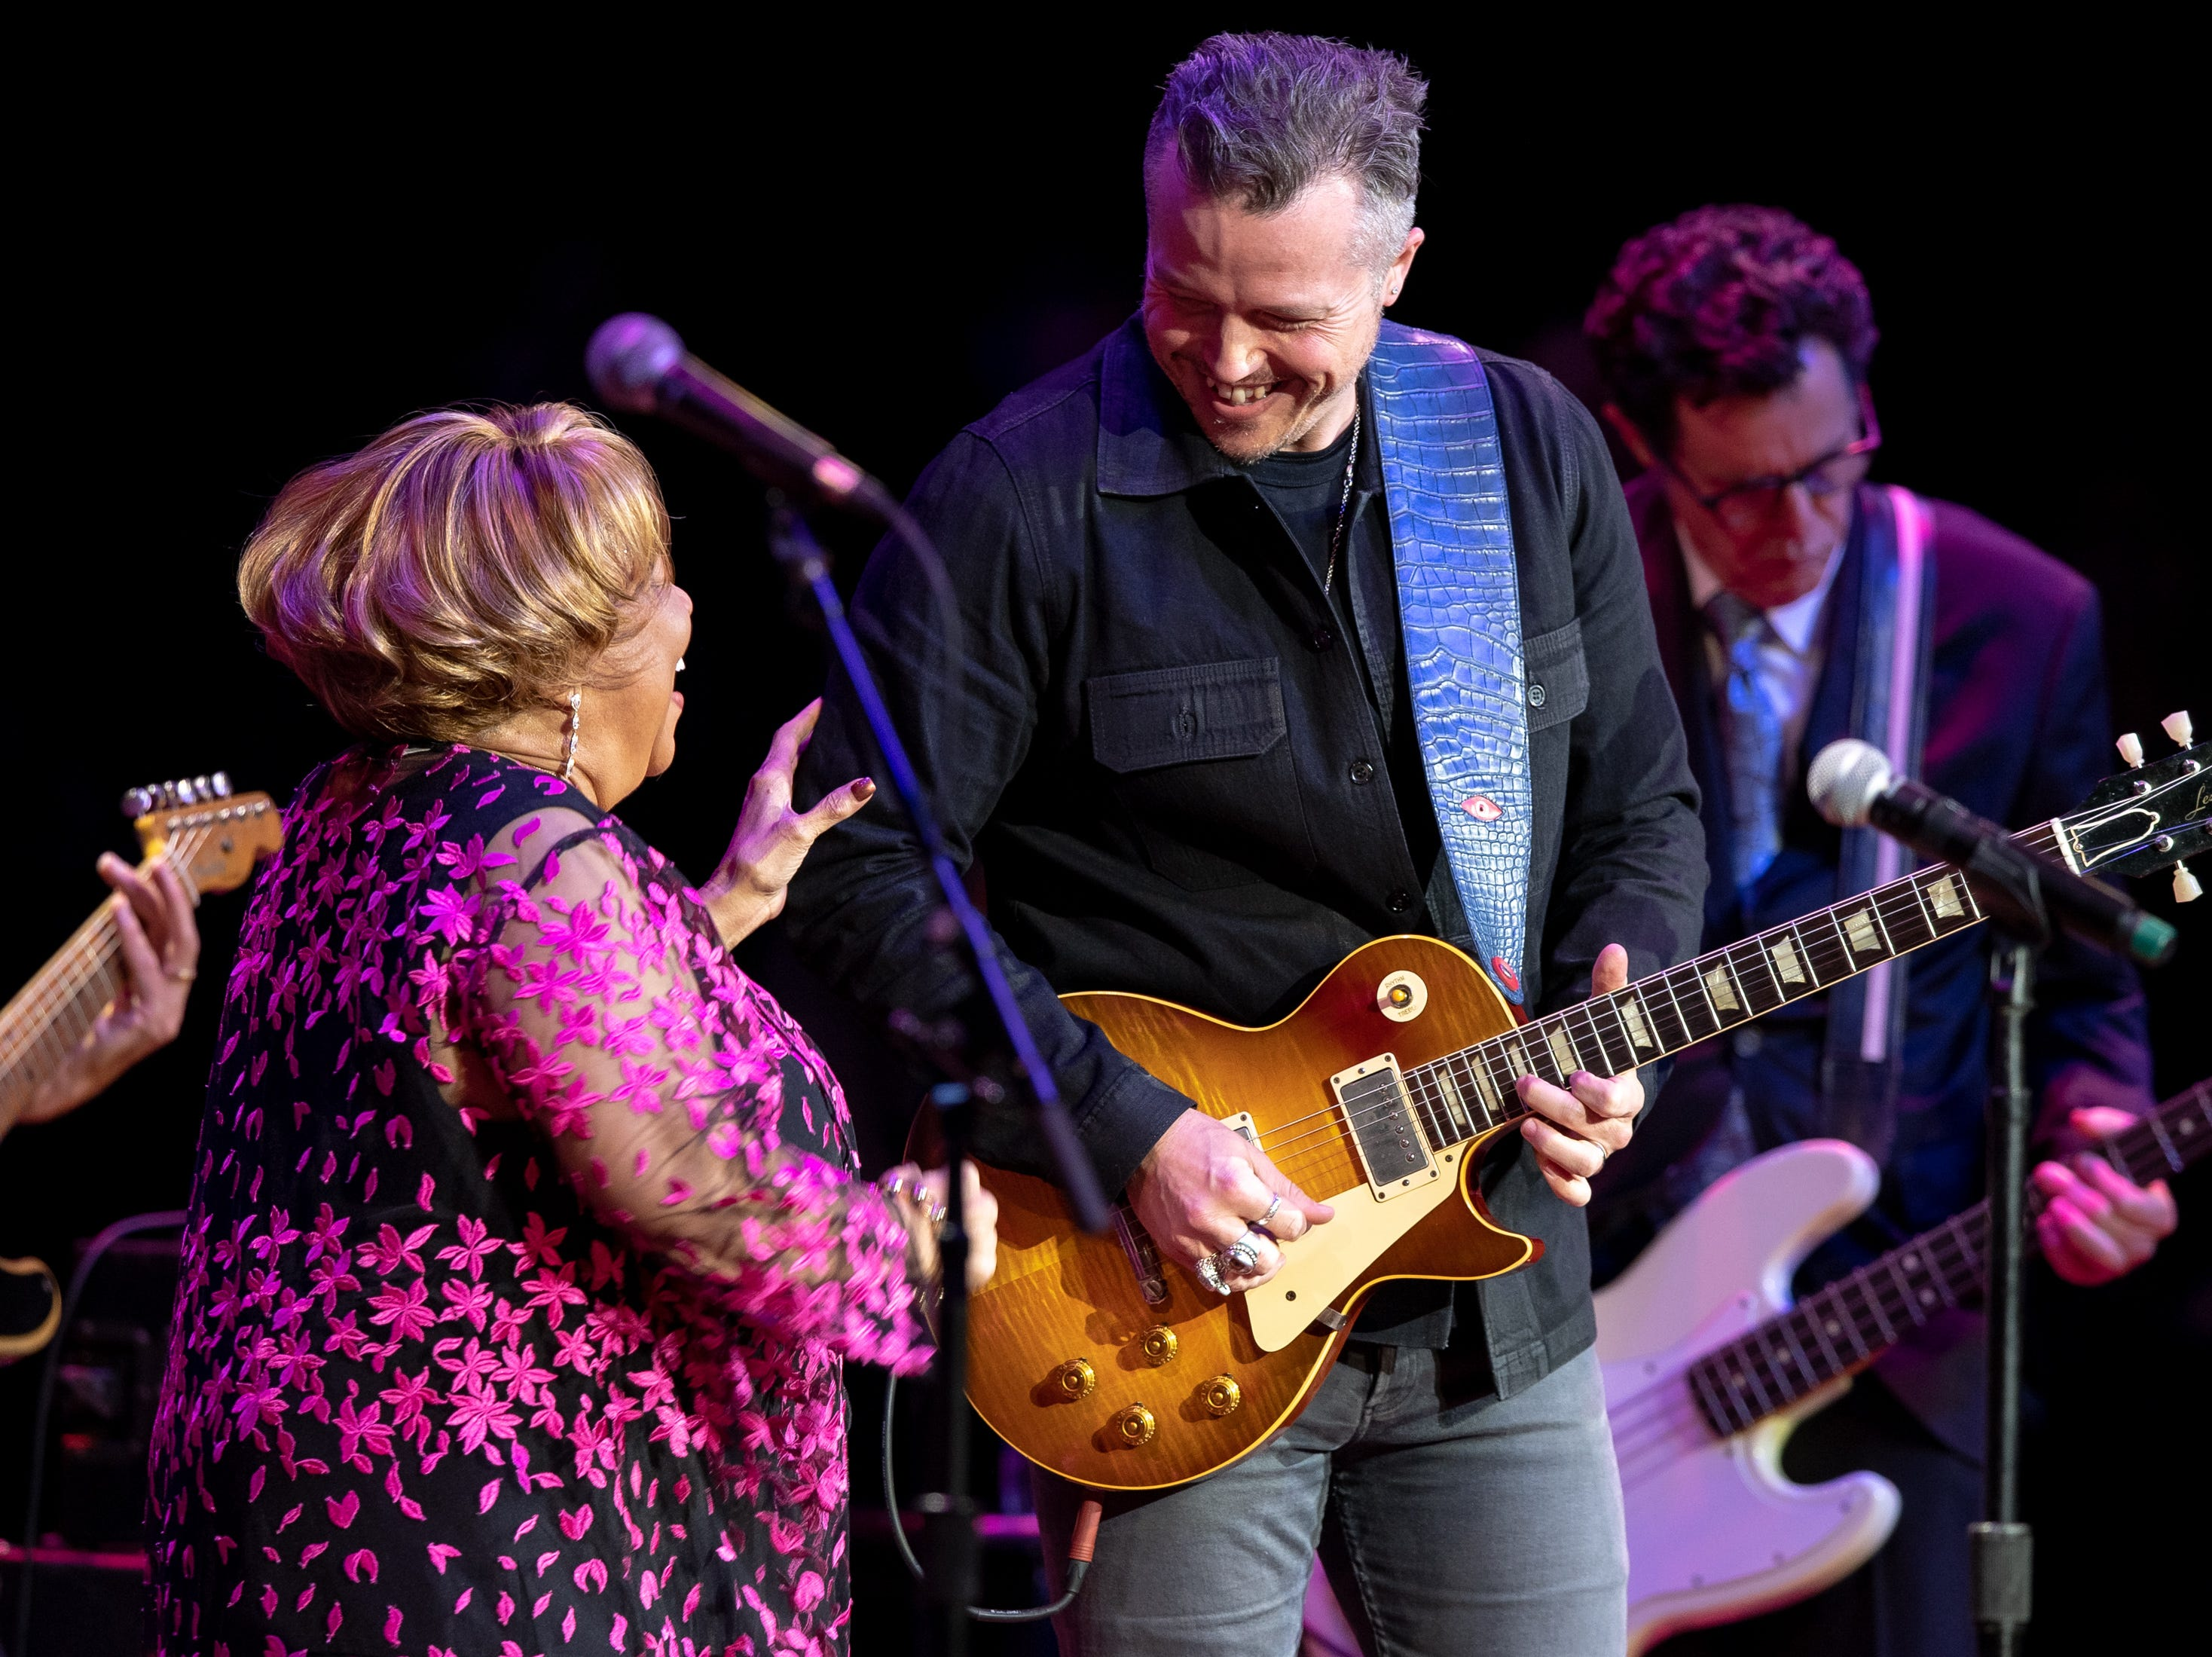 Mavis Staples performs with Jason Isbell during the Mavis and Friends concert at the Ryman Auditorium in Nashville, Tenn., Wednesday, May 15, 2019.